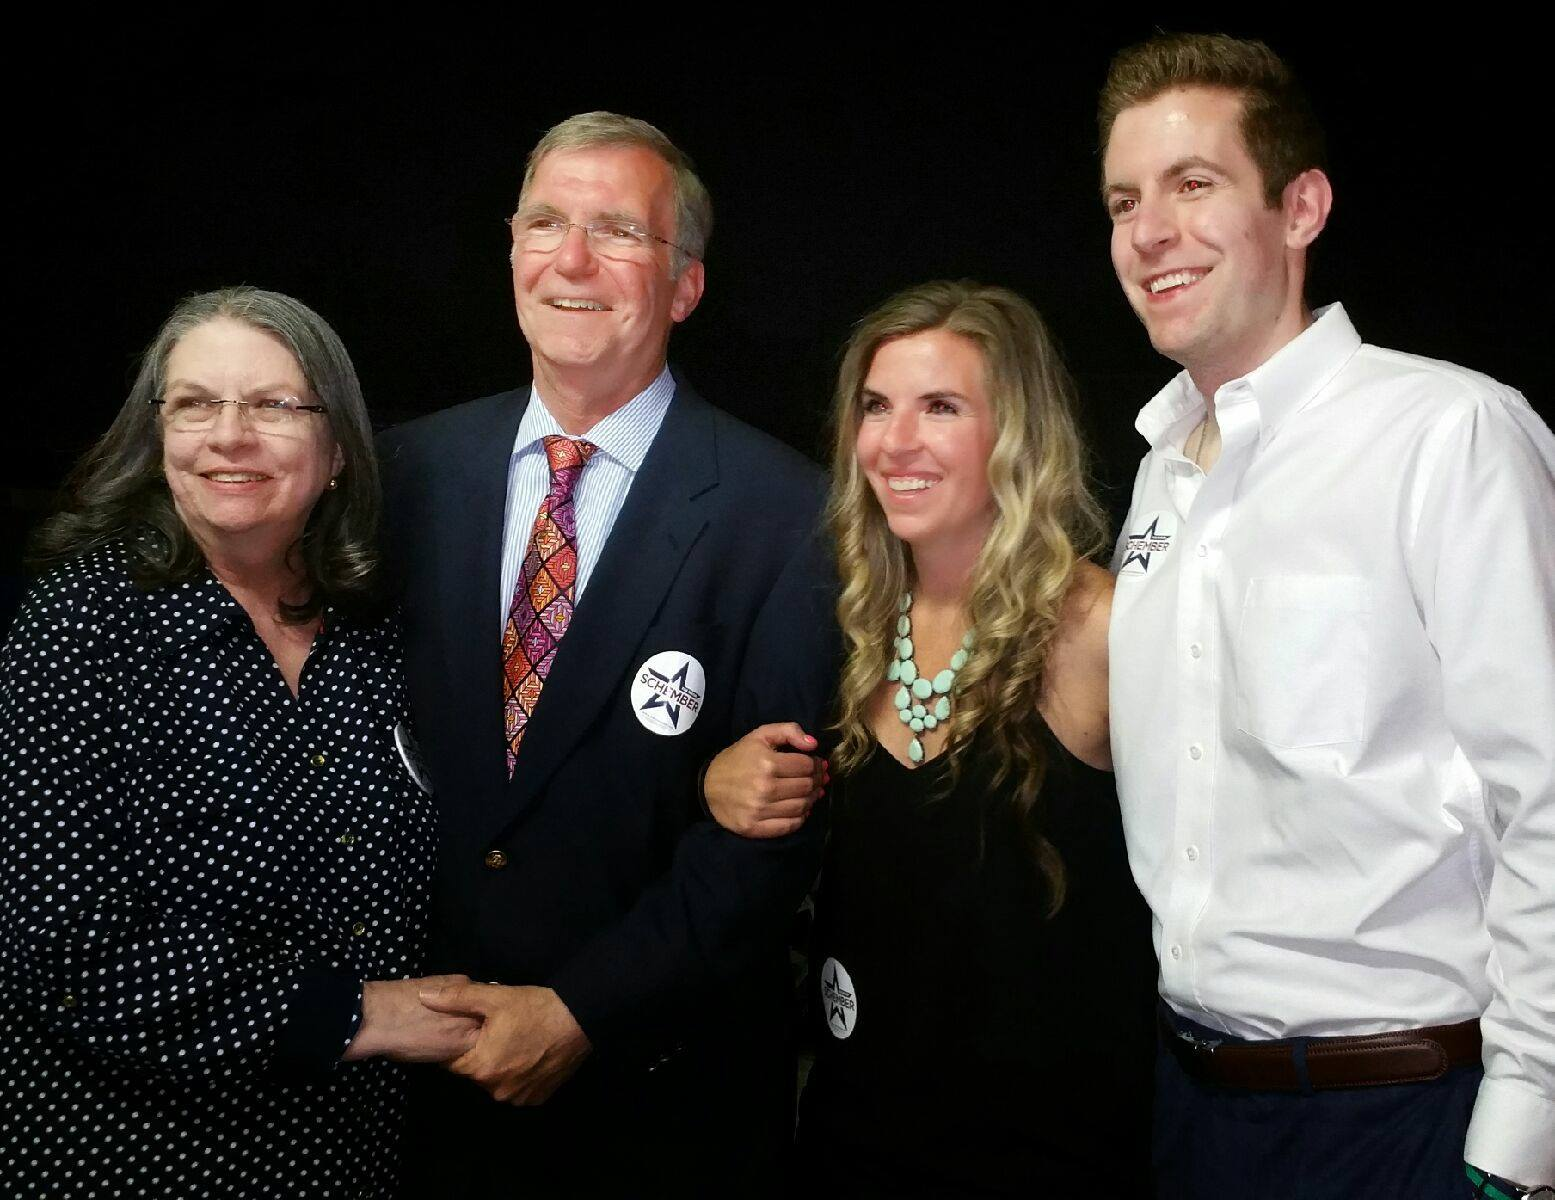 Joe, Rhonda, Jaime & Joe after his primary victory.